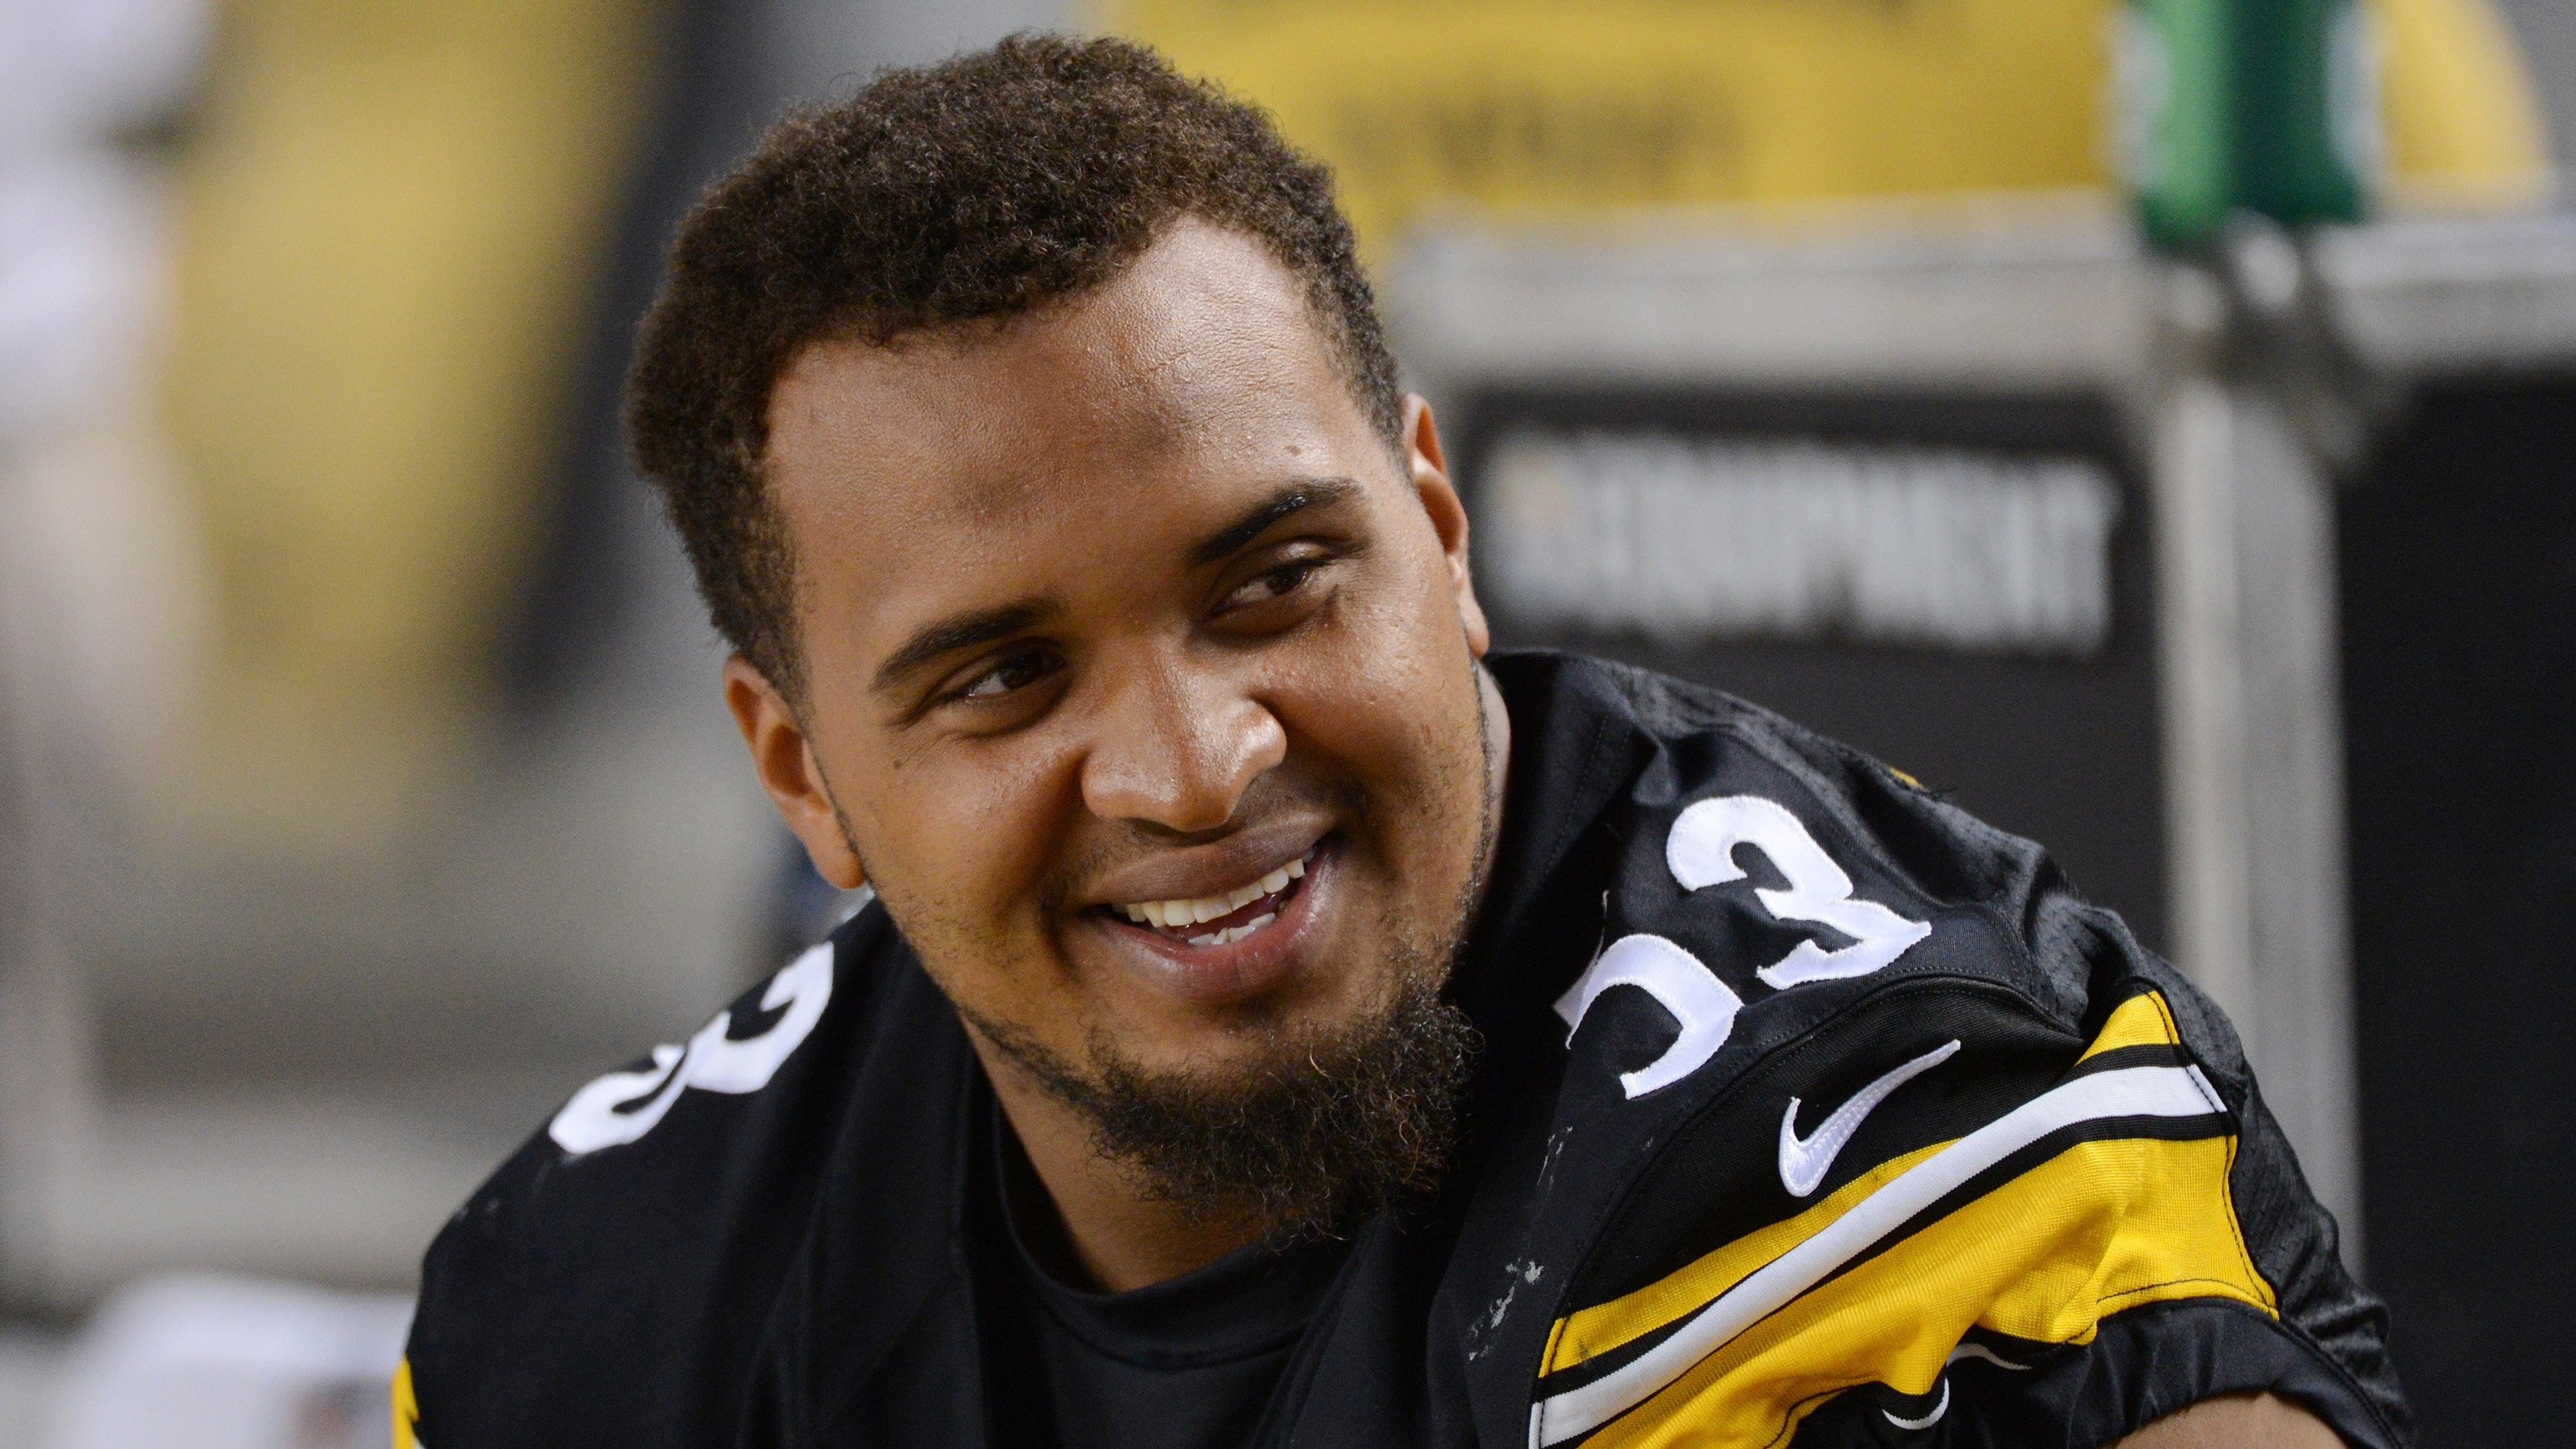 Steelers Maurkice Pouncey underwent seven ankle surgeries